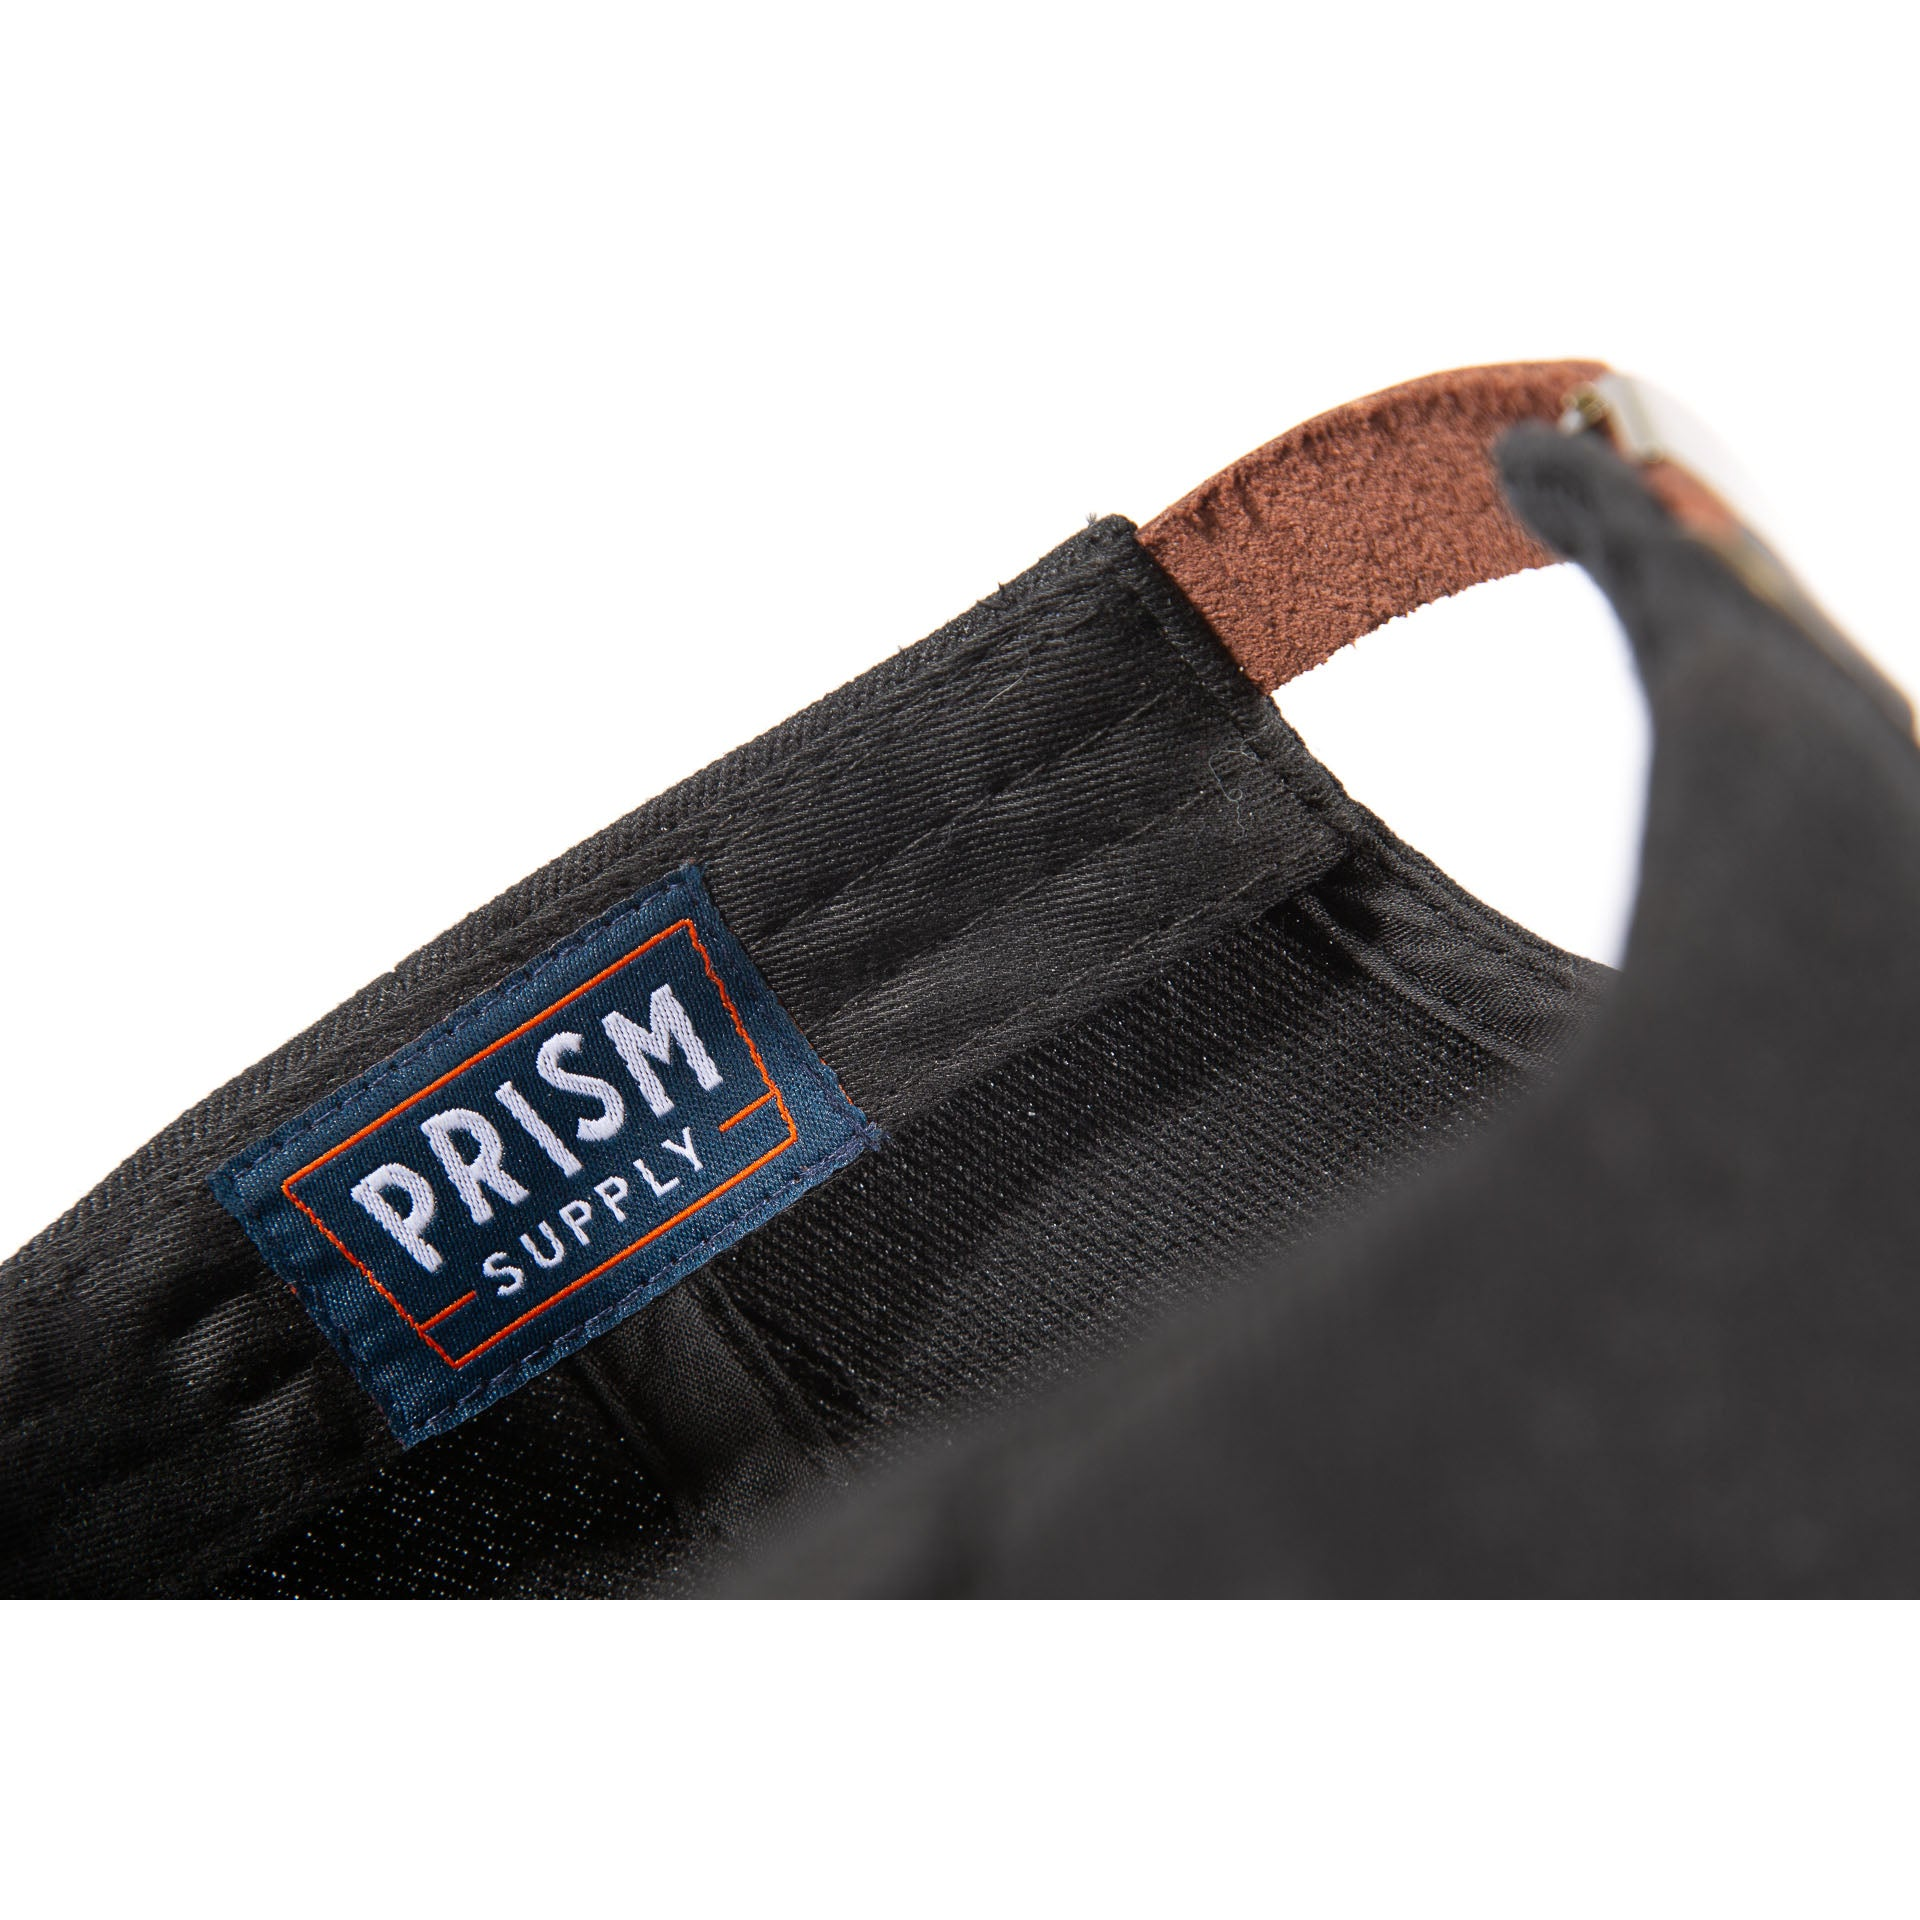 Cabin Hat - Black - Apparel and Accessories - Prism Supply